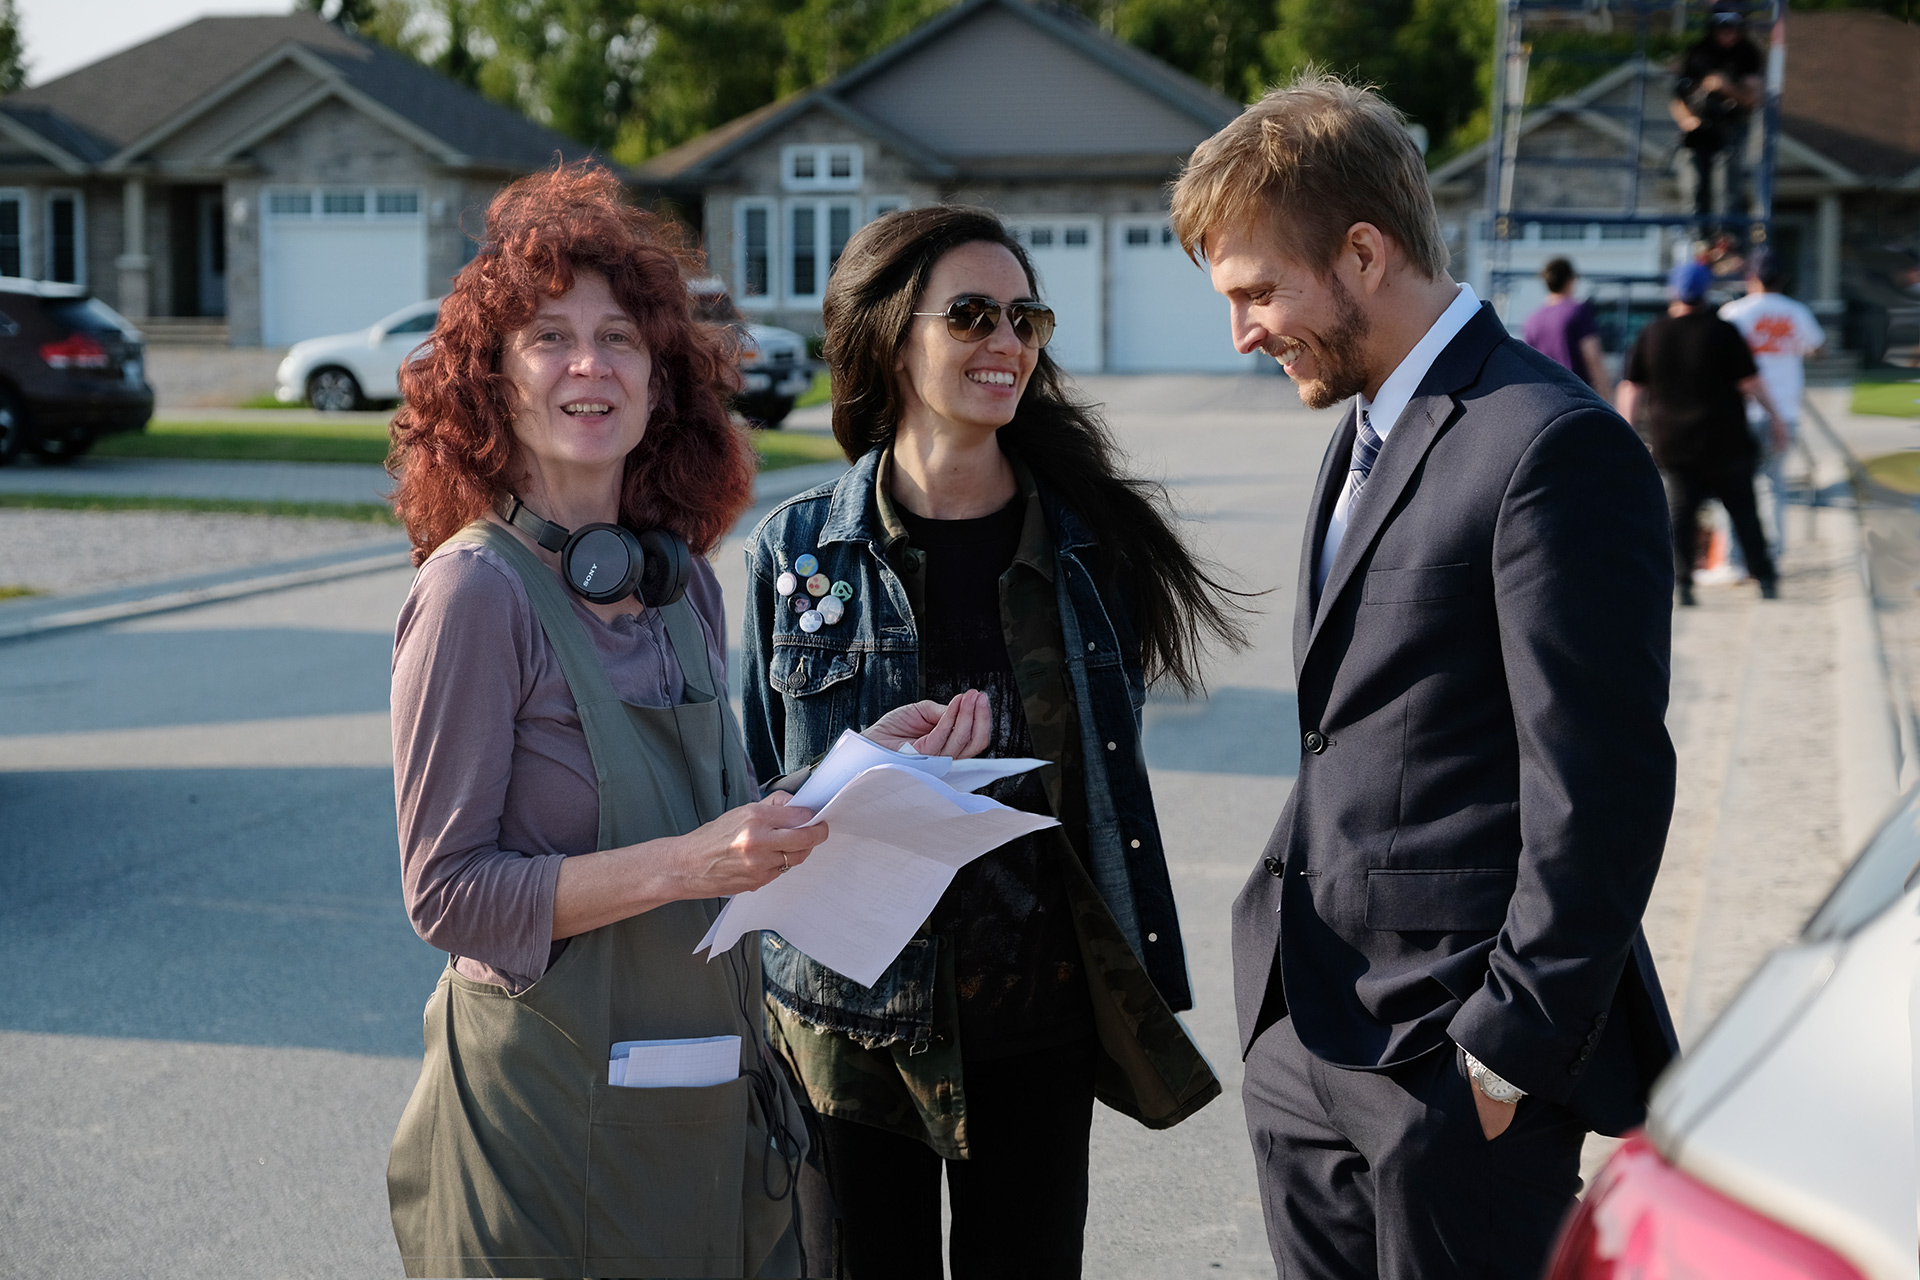 Director Roz Owen and cast members Cara Gee and Jon Cor on the set of Trouble in the Garden